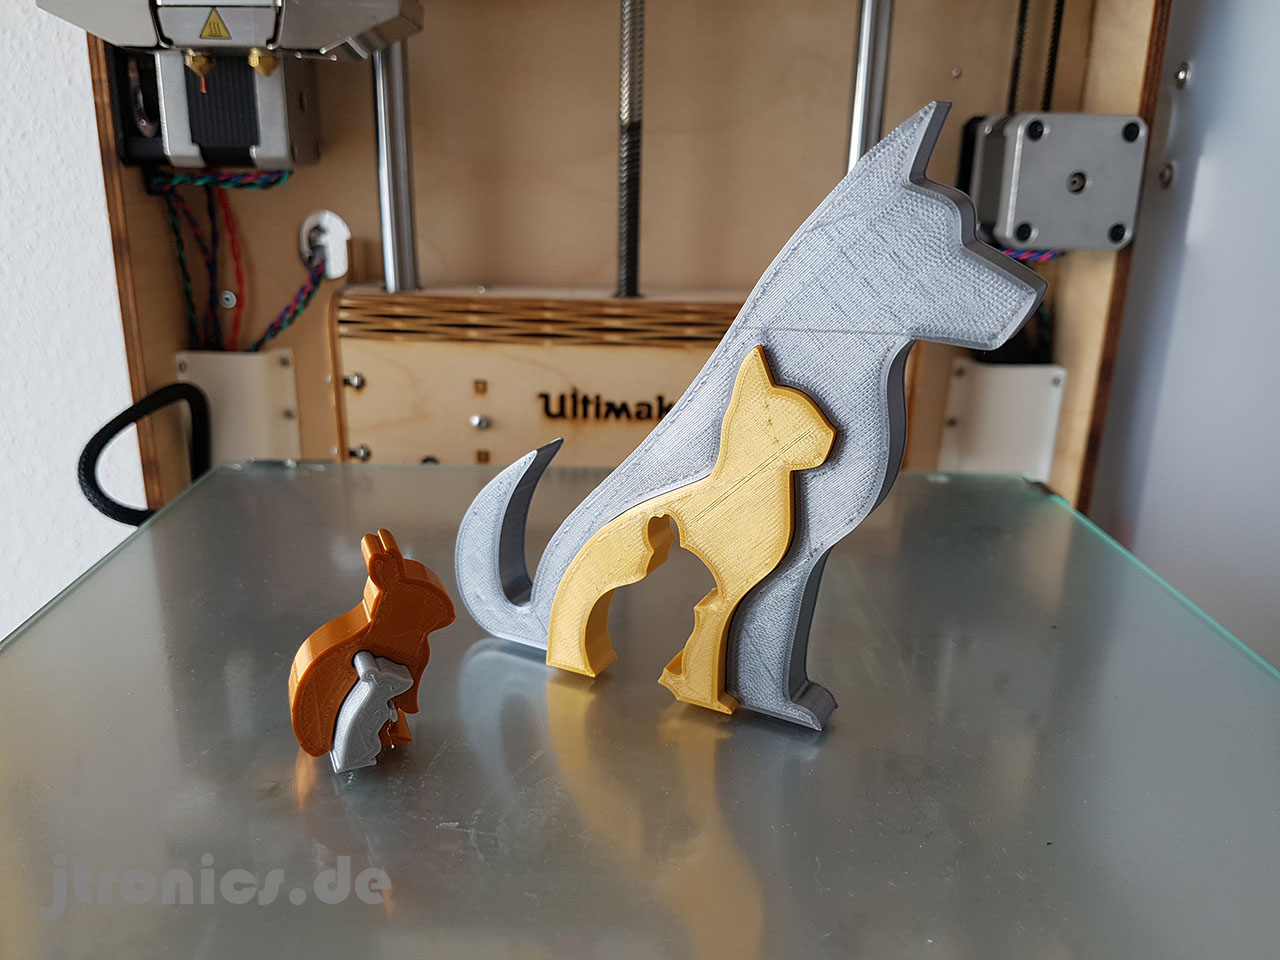 20190618_115805.jpg Download free STL file Animal Silhouette - Dog Cat Rabbit Mouse • 3D printing template, jtronics